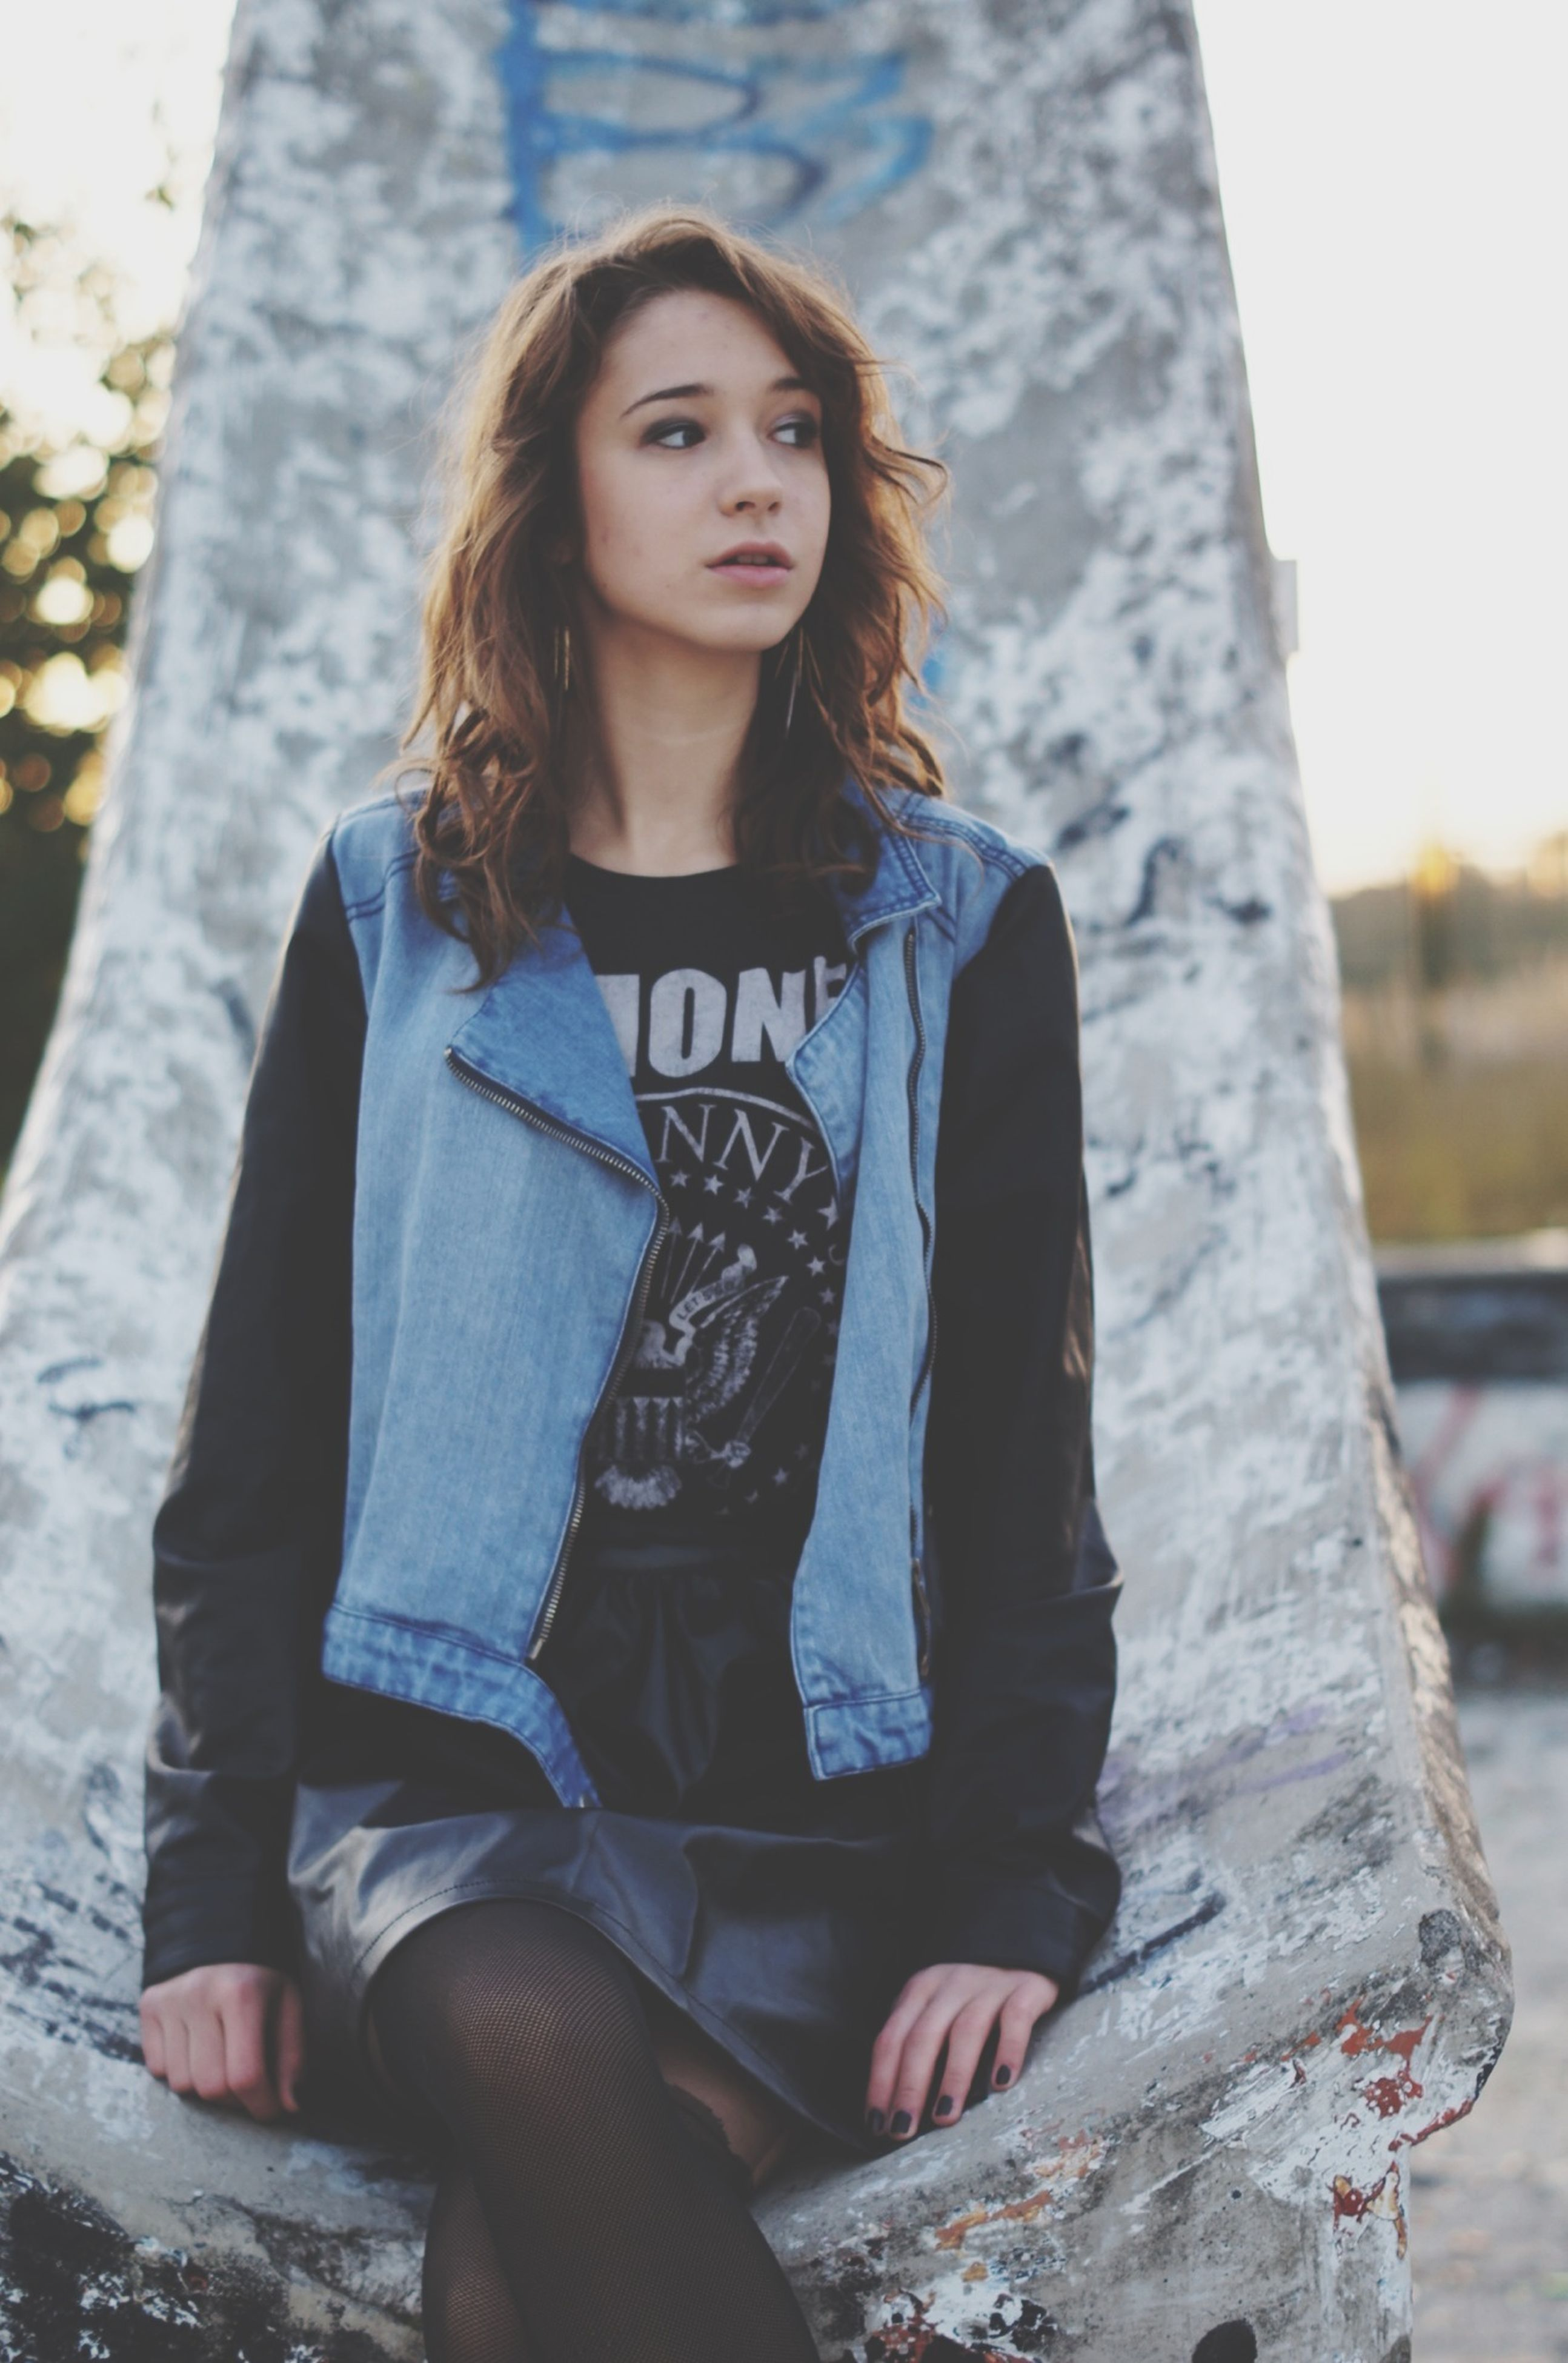 lifestyles, casual clothing, person, young adult, looking at camera, portrait, leisure activity, standing, front view, young women, three quarter length, focus on foreground, long hair, day, outdoors, warm clothing, waist up